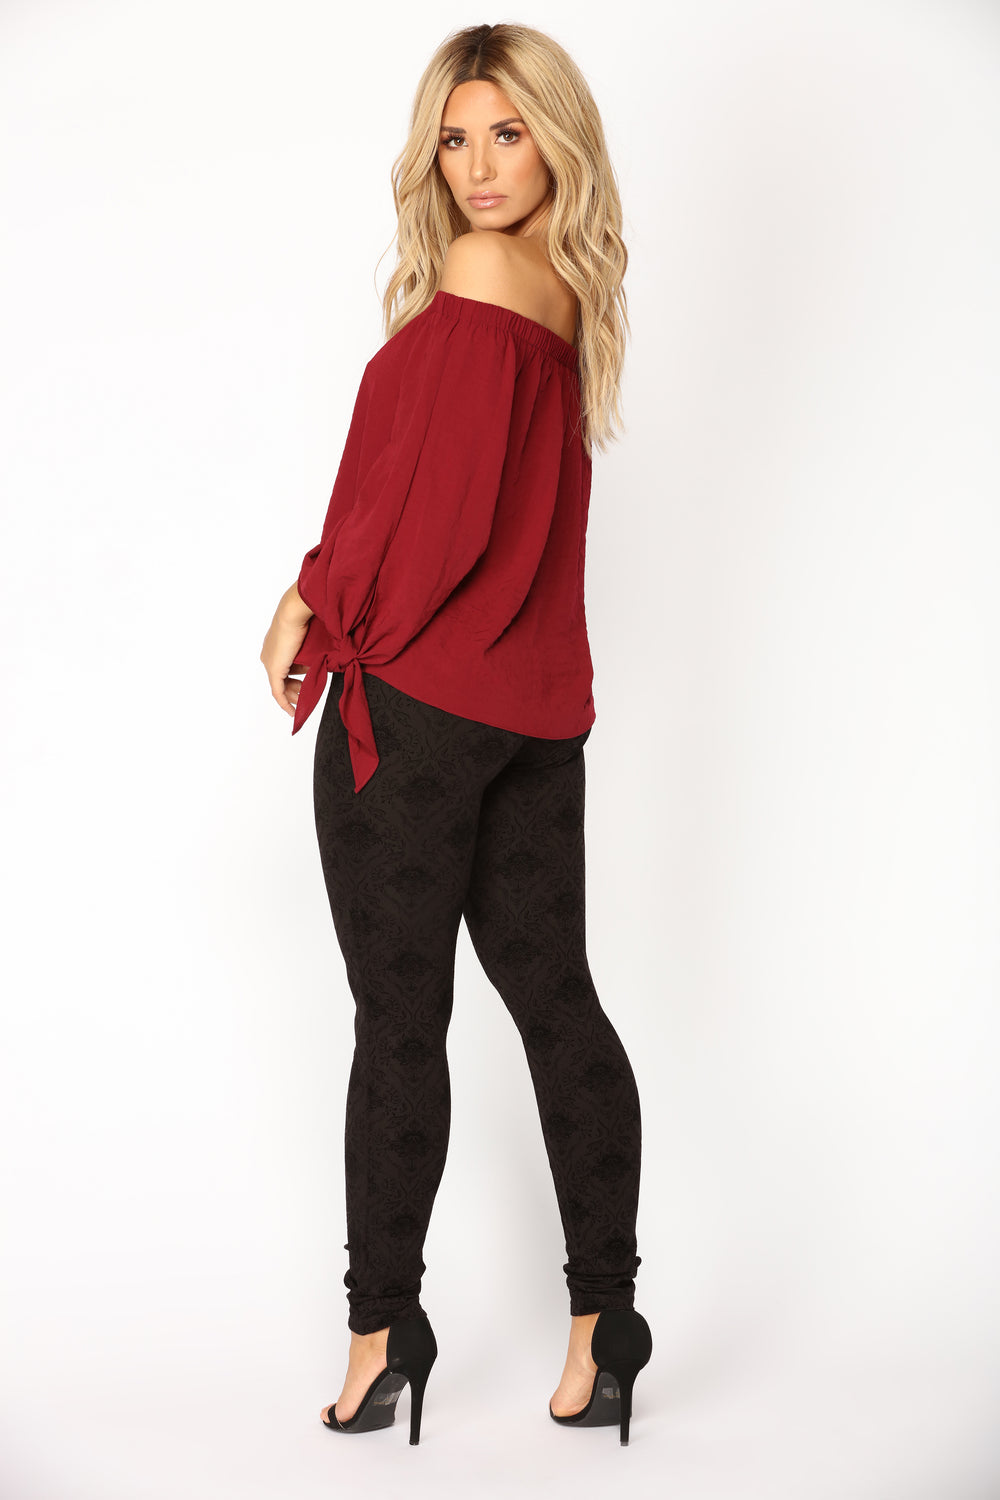 Dima Flocked Leggings - Black